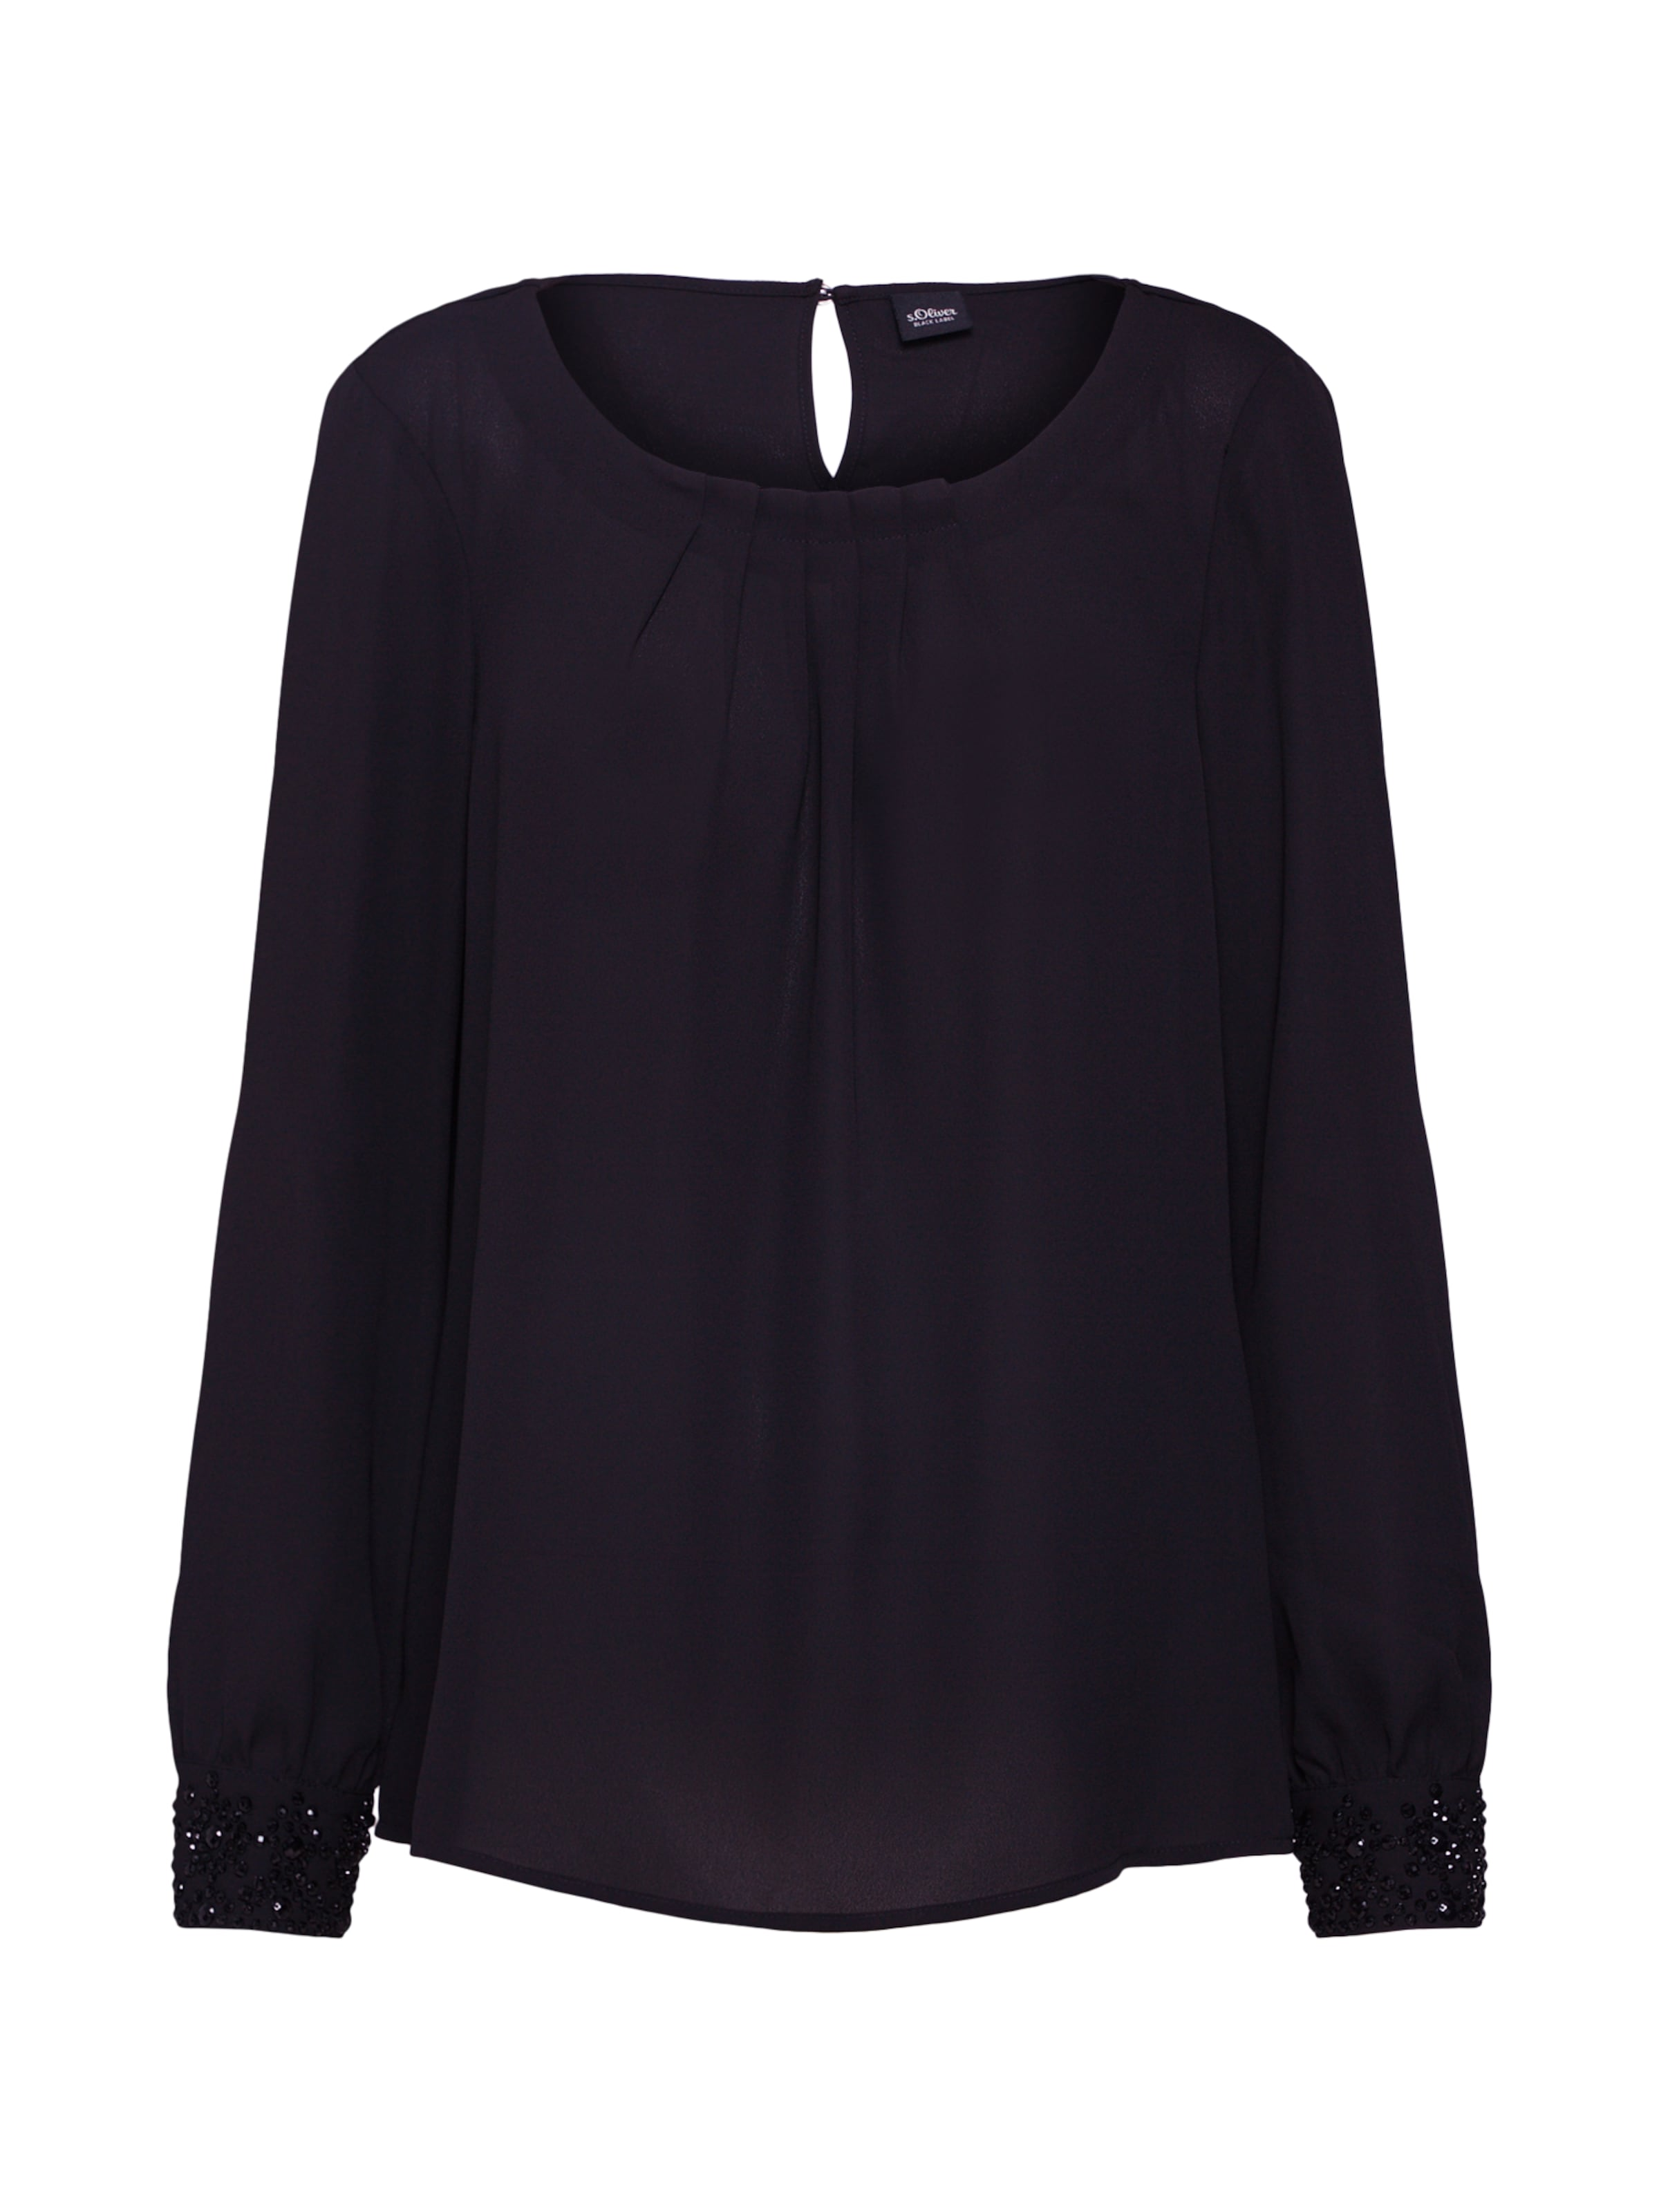 Label Blouse Zwart oliver S Black In YEH92eWbDI